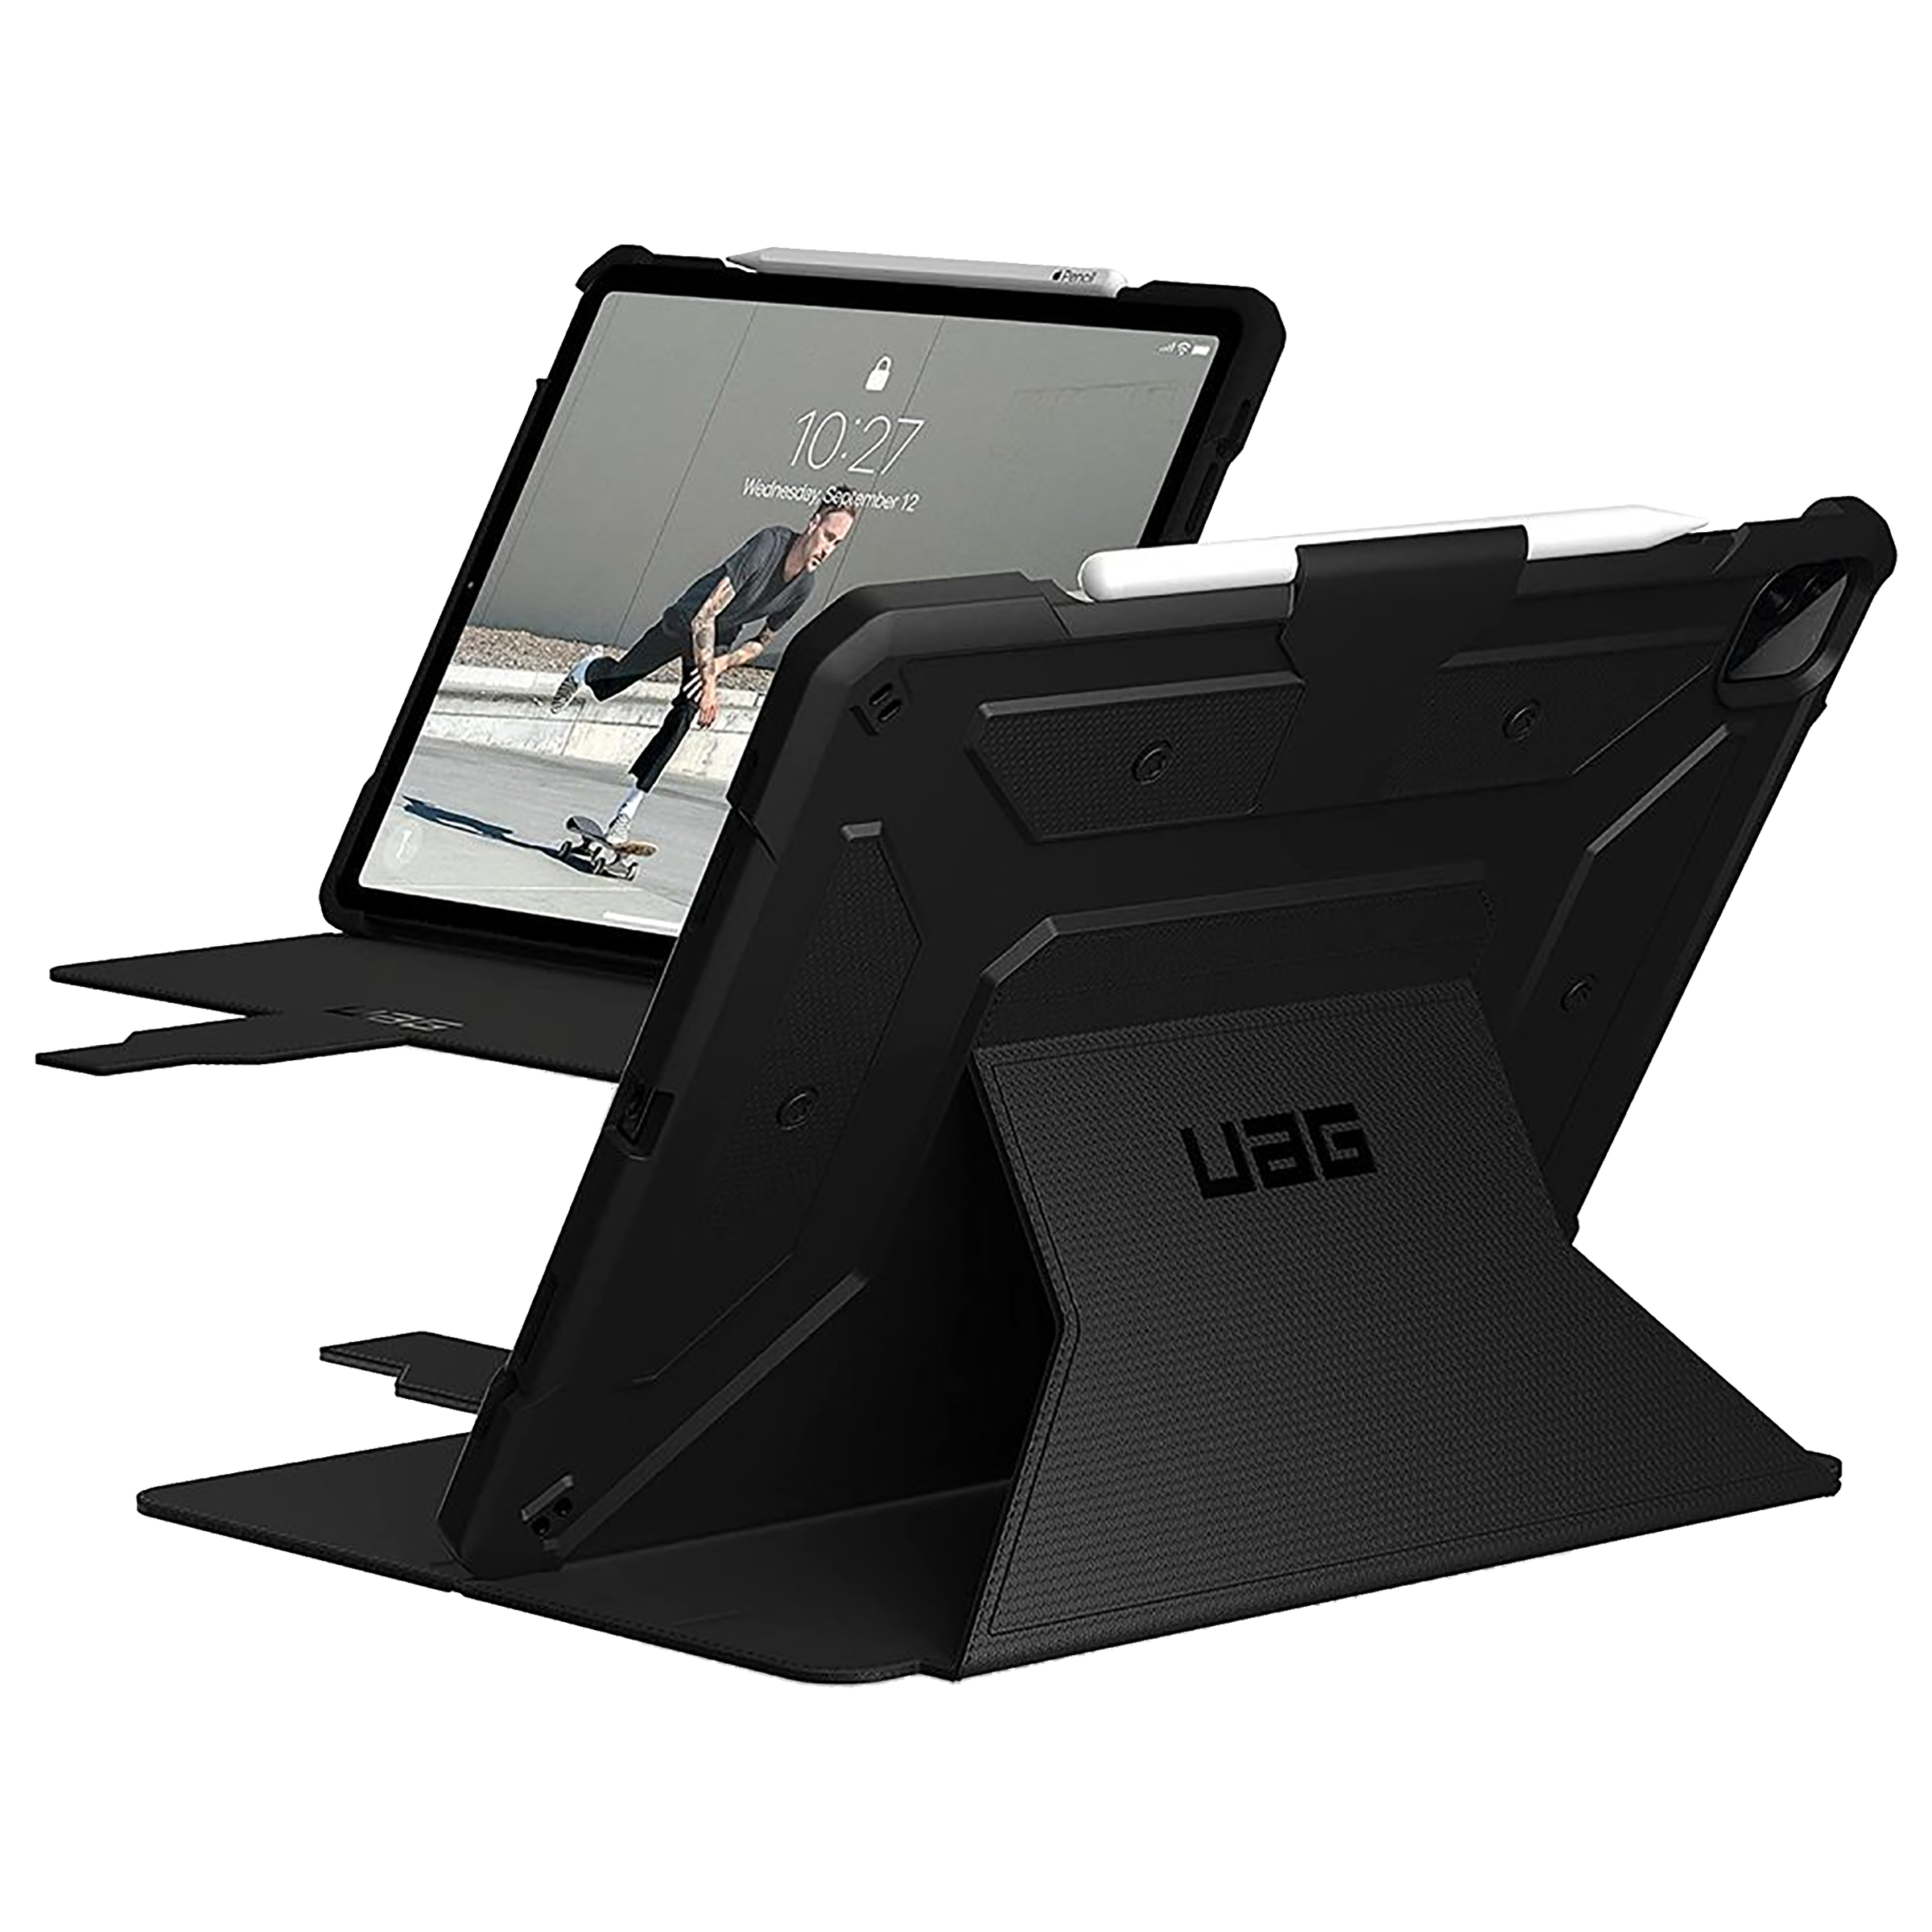 UAG Metropolis Thermoplastic Polyurethane Flip Case with Stand For Apple iPad Pro 12.9 Inch (Feather-Light Construction, UGMP_129G5_BK, Black)_1